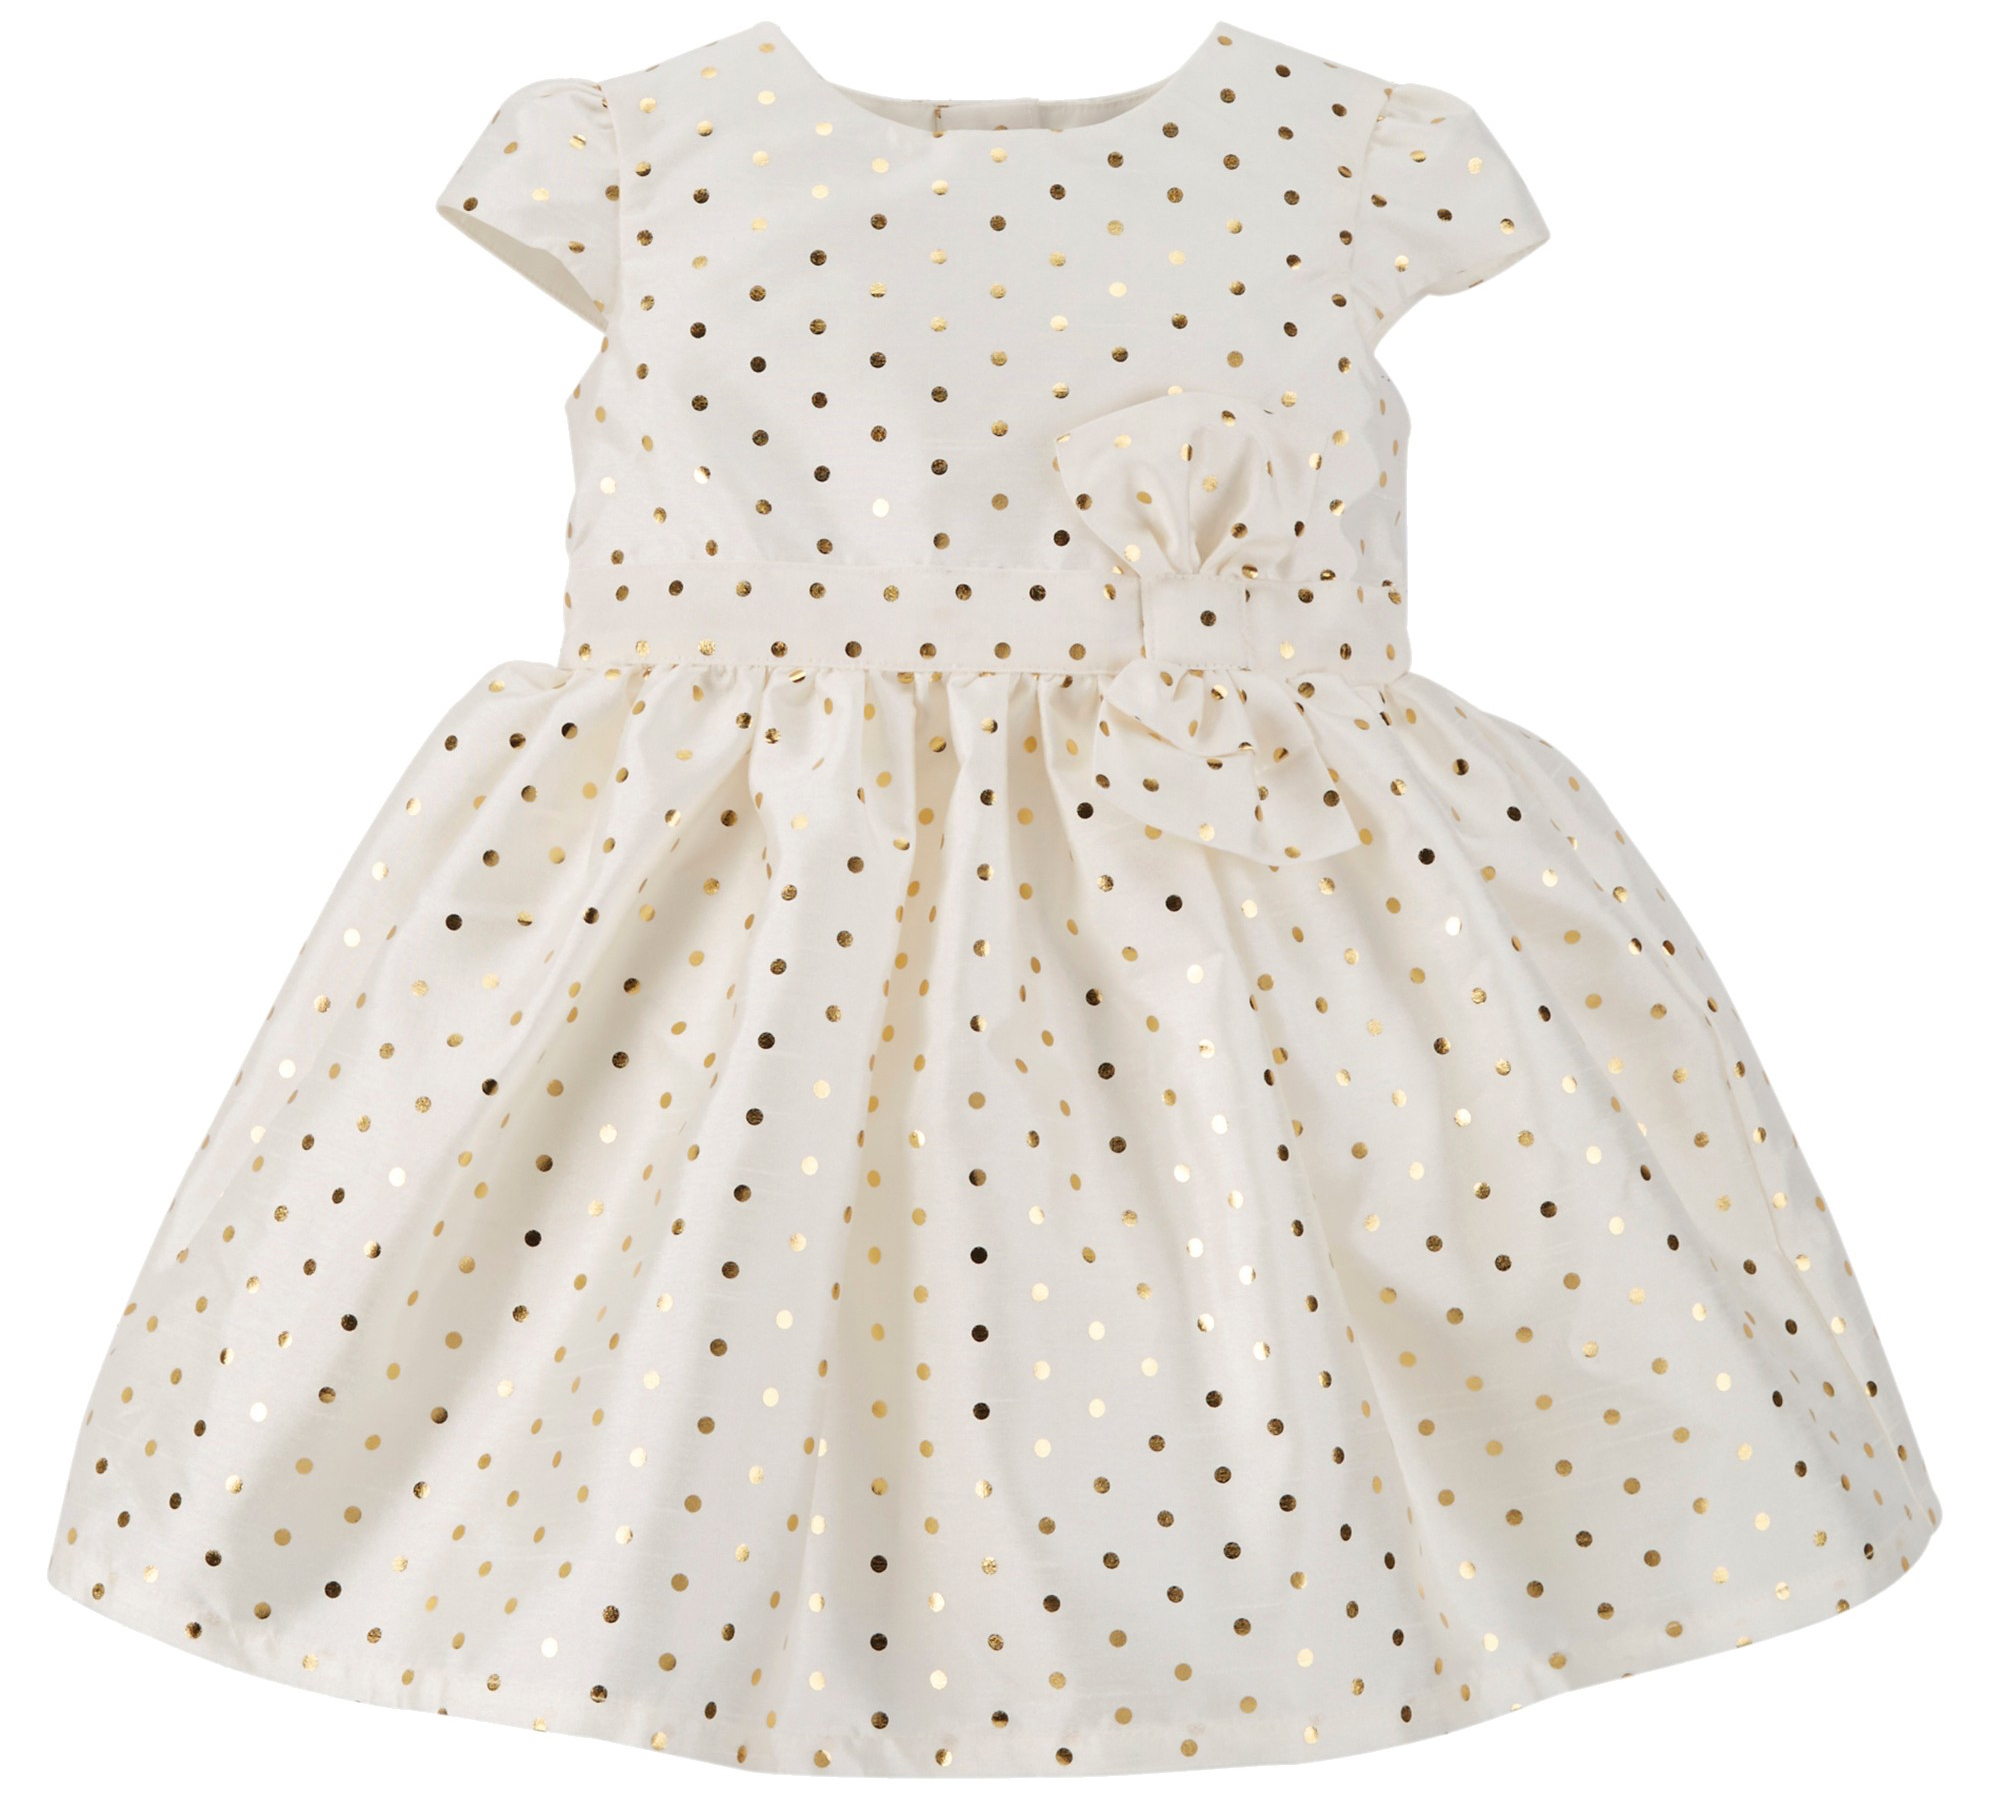 Gold Polka Dot Dress from Target